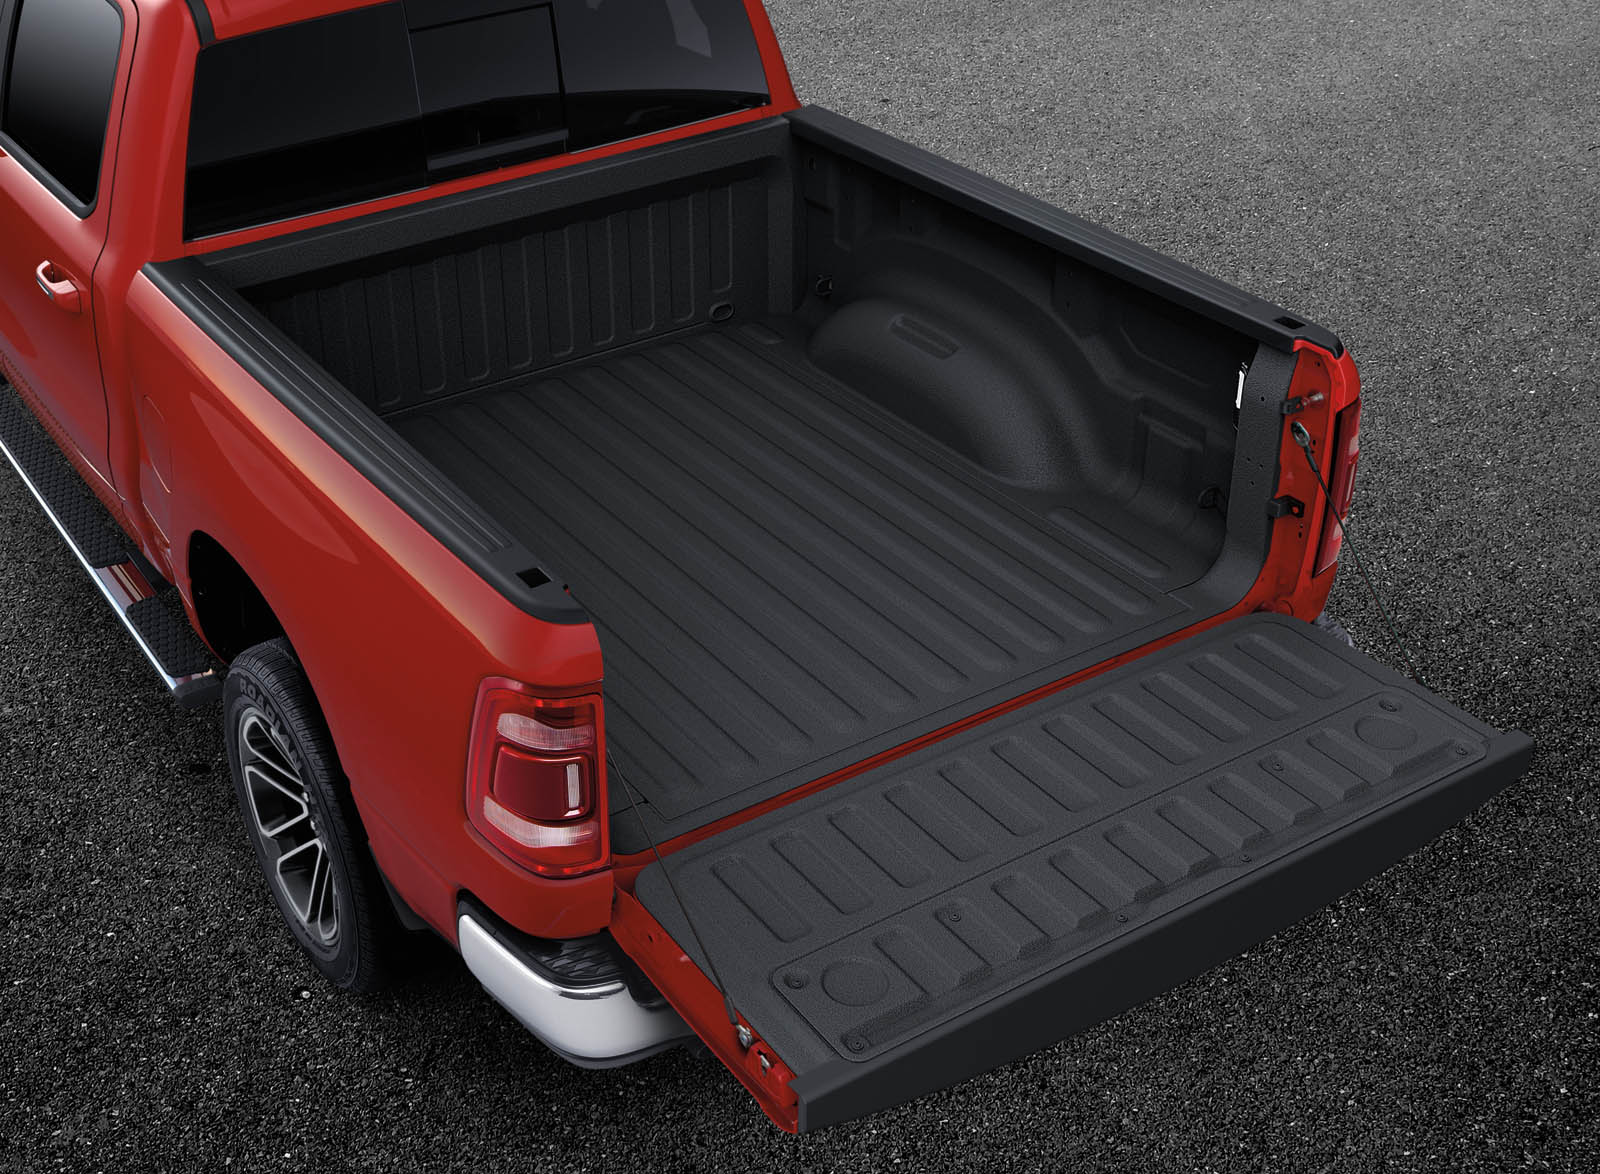 Mopar Spray-In Bedliner